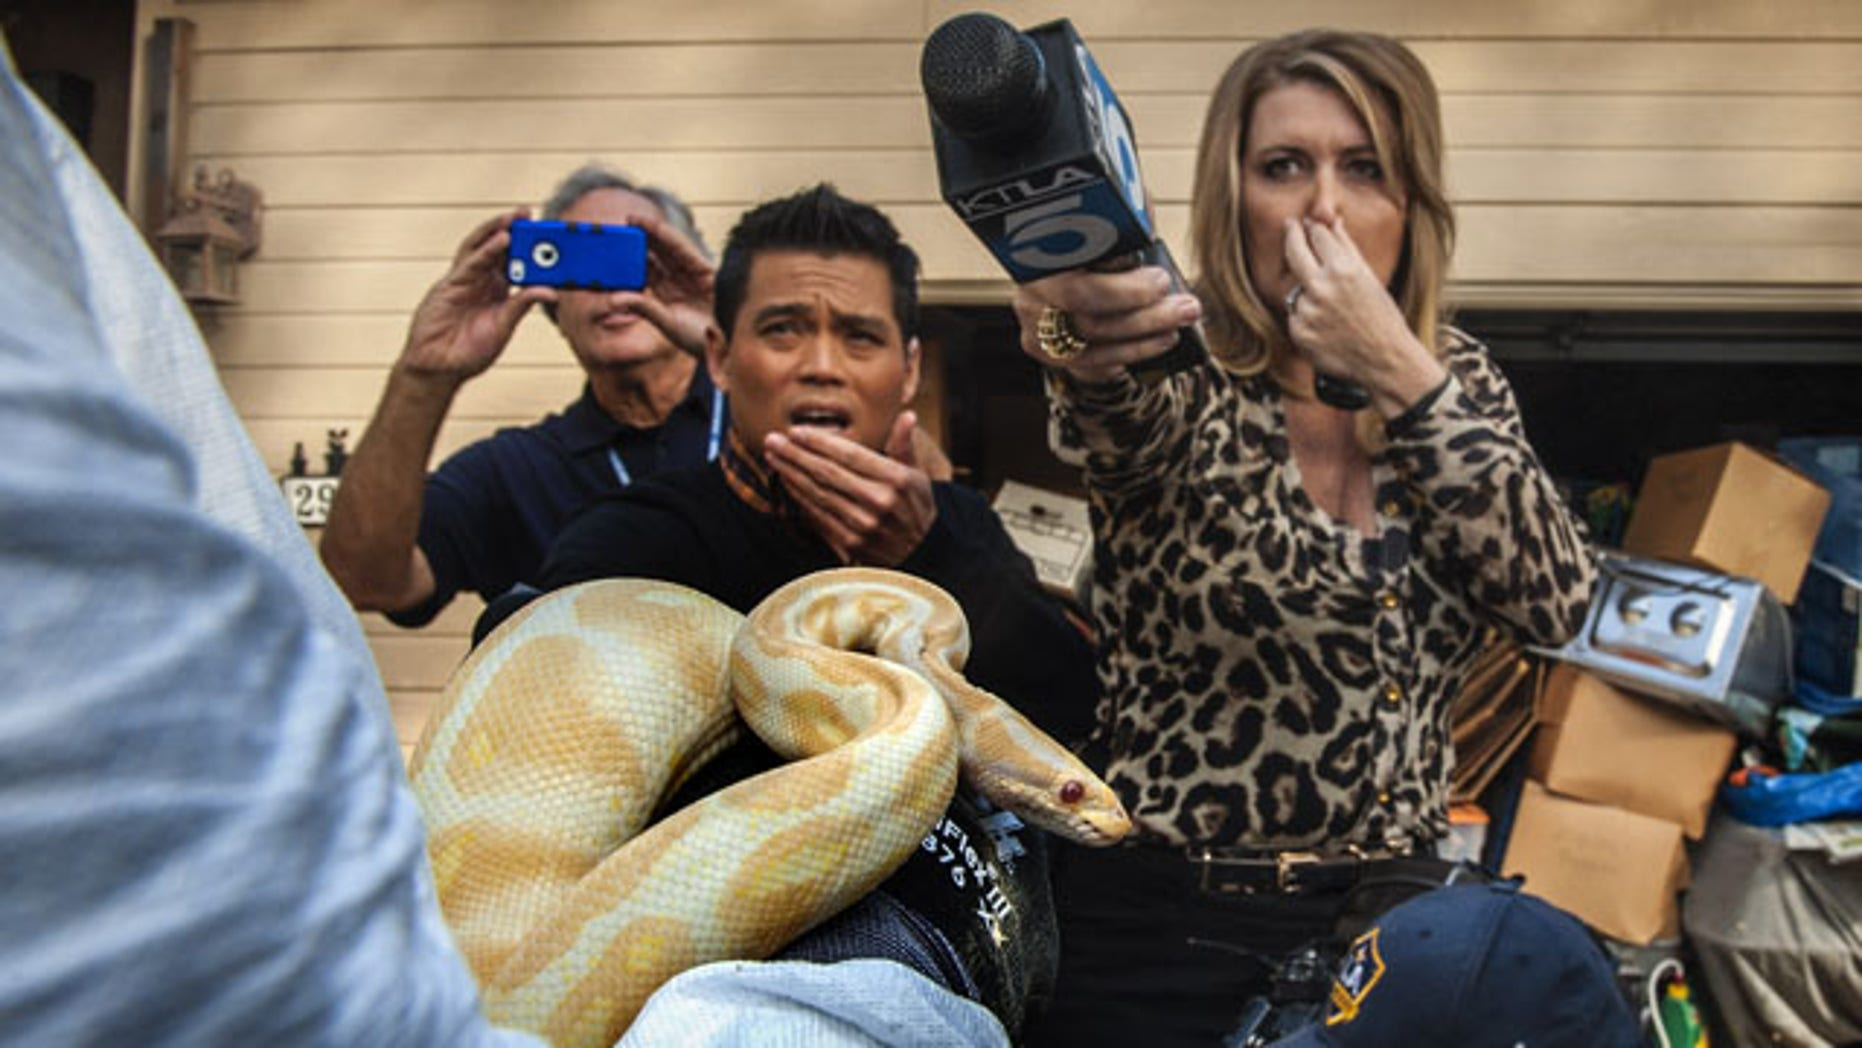 January 29, 2014: While interviewing Sondra Berg, Santa Ana Police Animal Services supervisor, television reporters Bobby DeCastro, from FOX11, and Wendy Burch, of KTLA 5 plug their noses to avoid the stench emanating from the house with of dead and decaying snakes in Santa Ana, Calif. Berg holds an albino ball python that was one of the surviving snakes in the home. (AP Photo/The Orange County Register, Bruce Chambers)